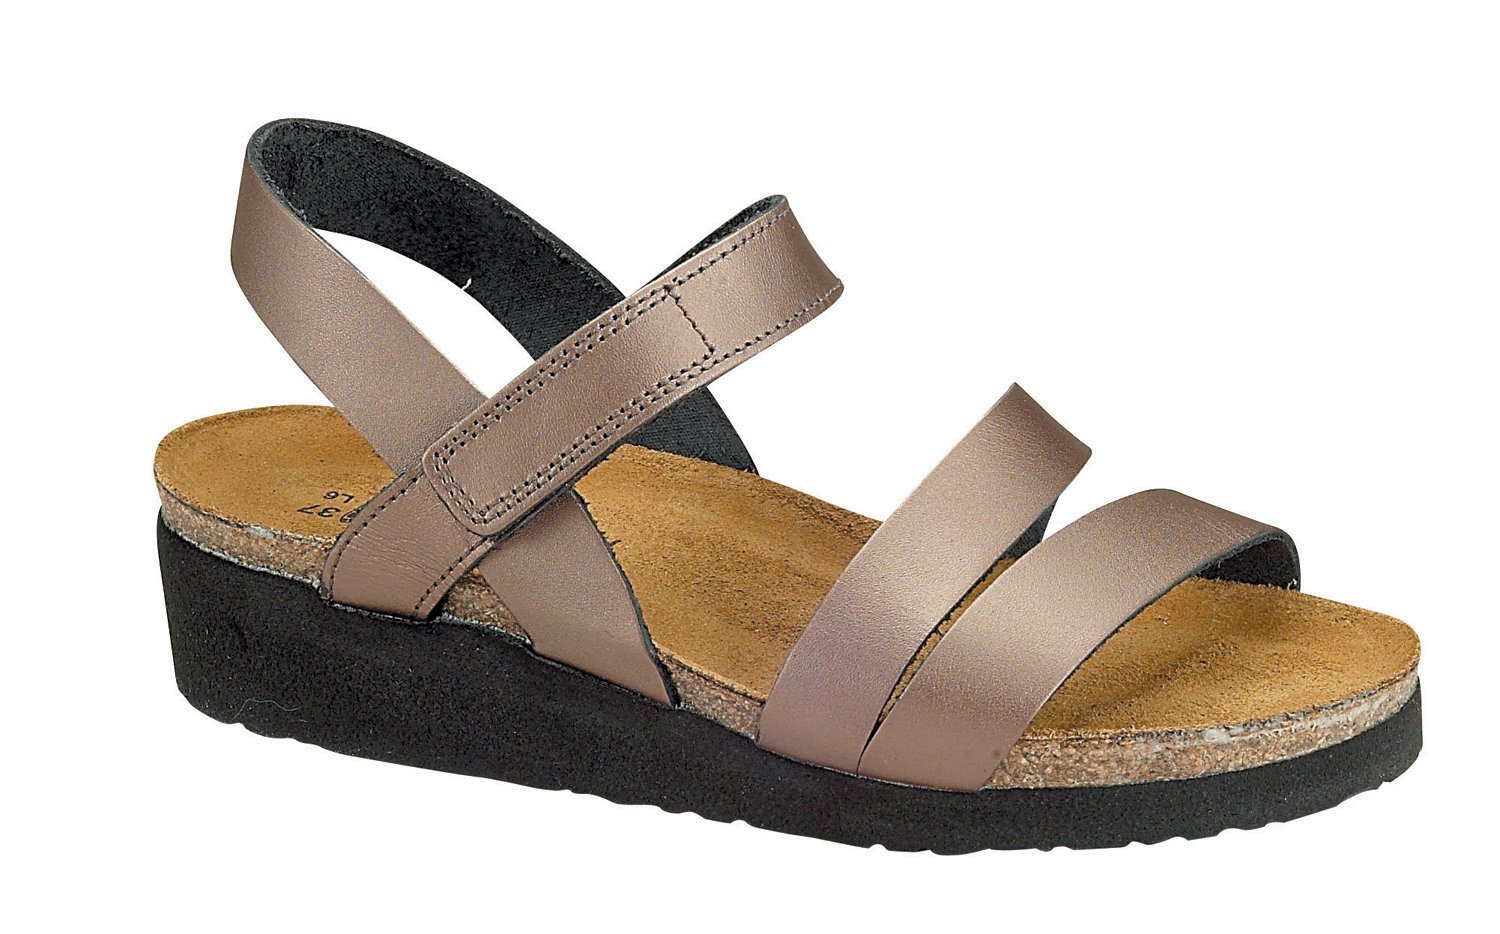 Naot Women's Kayla Sandals,Copper Leather,37 M EU